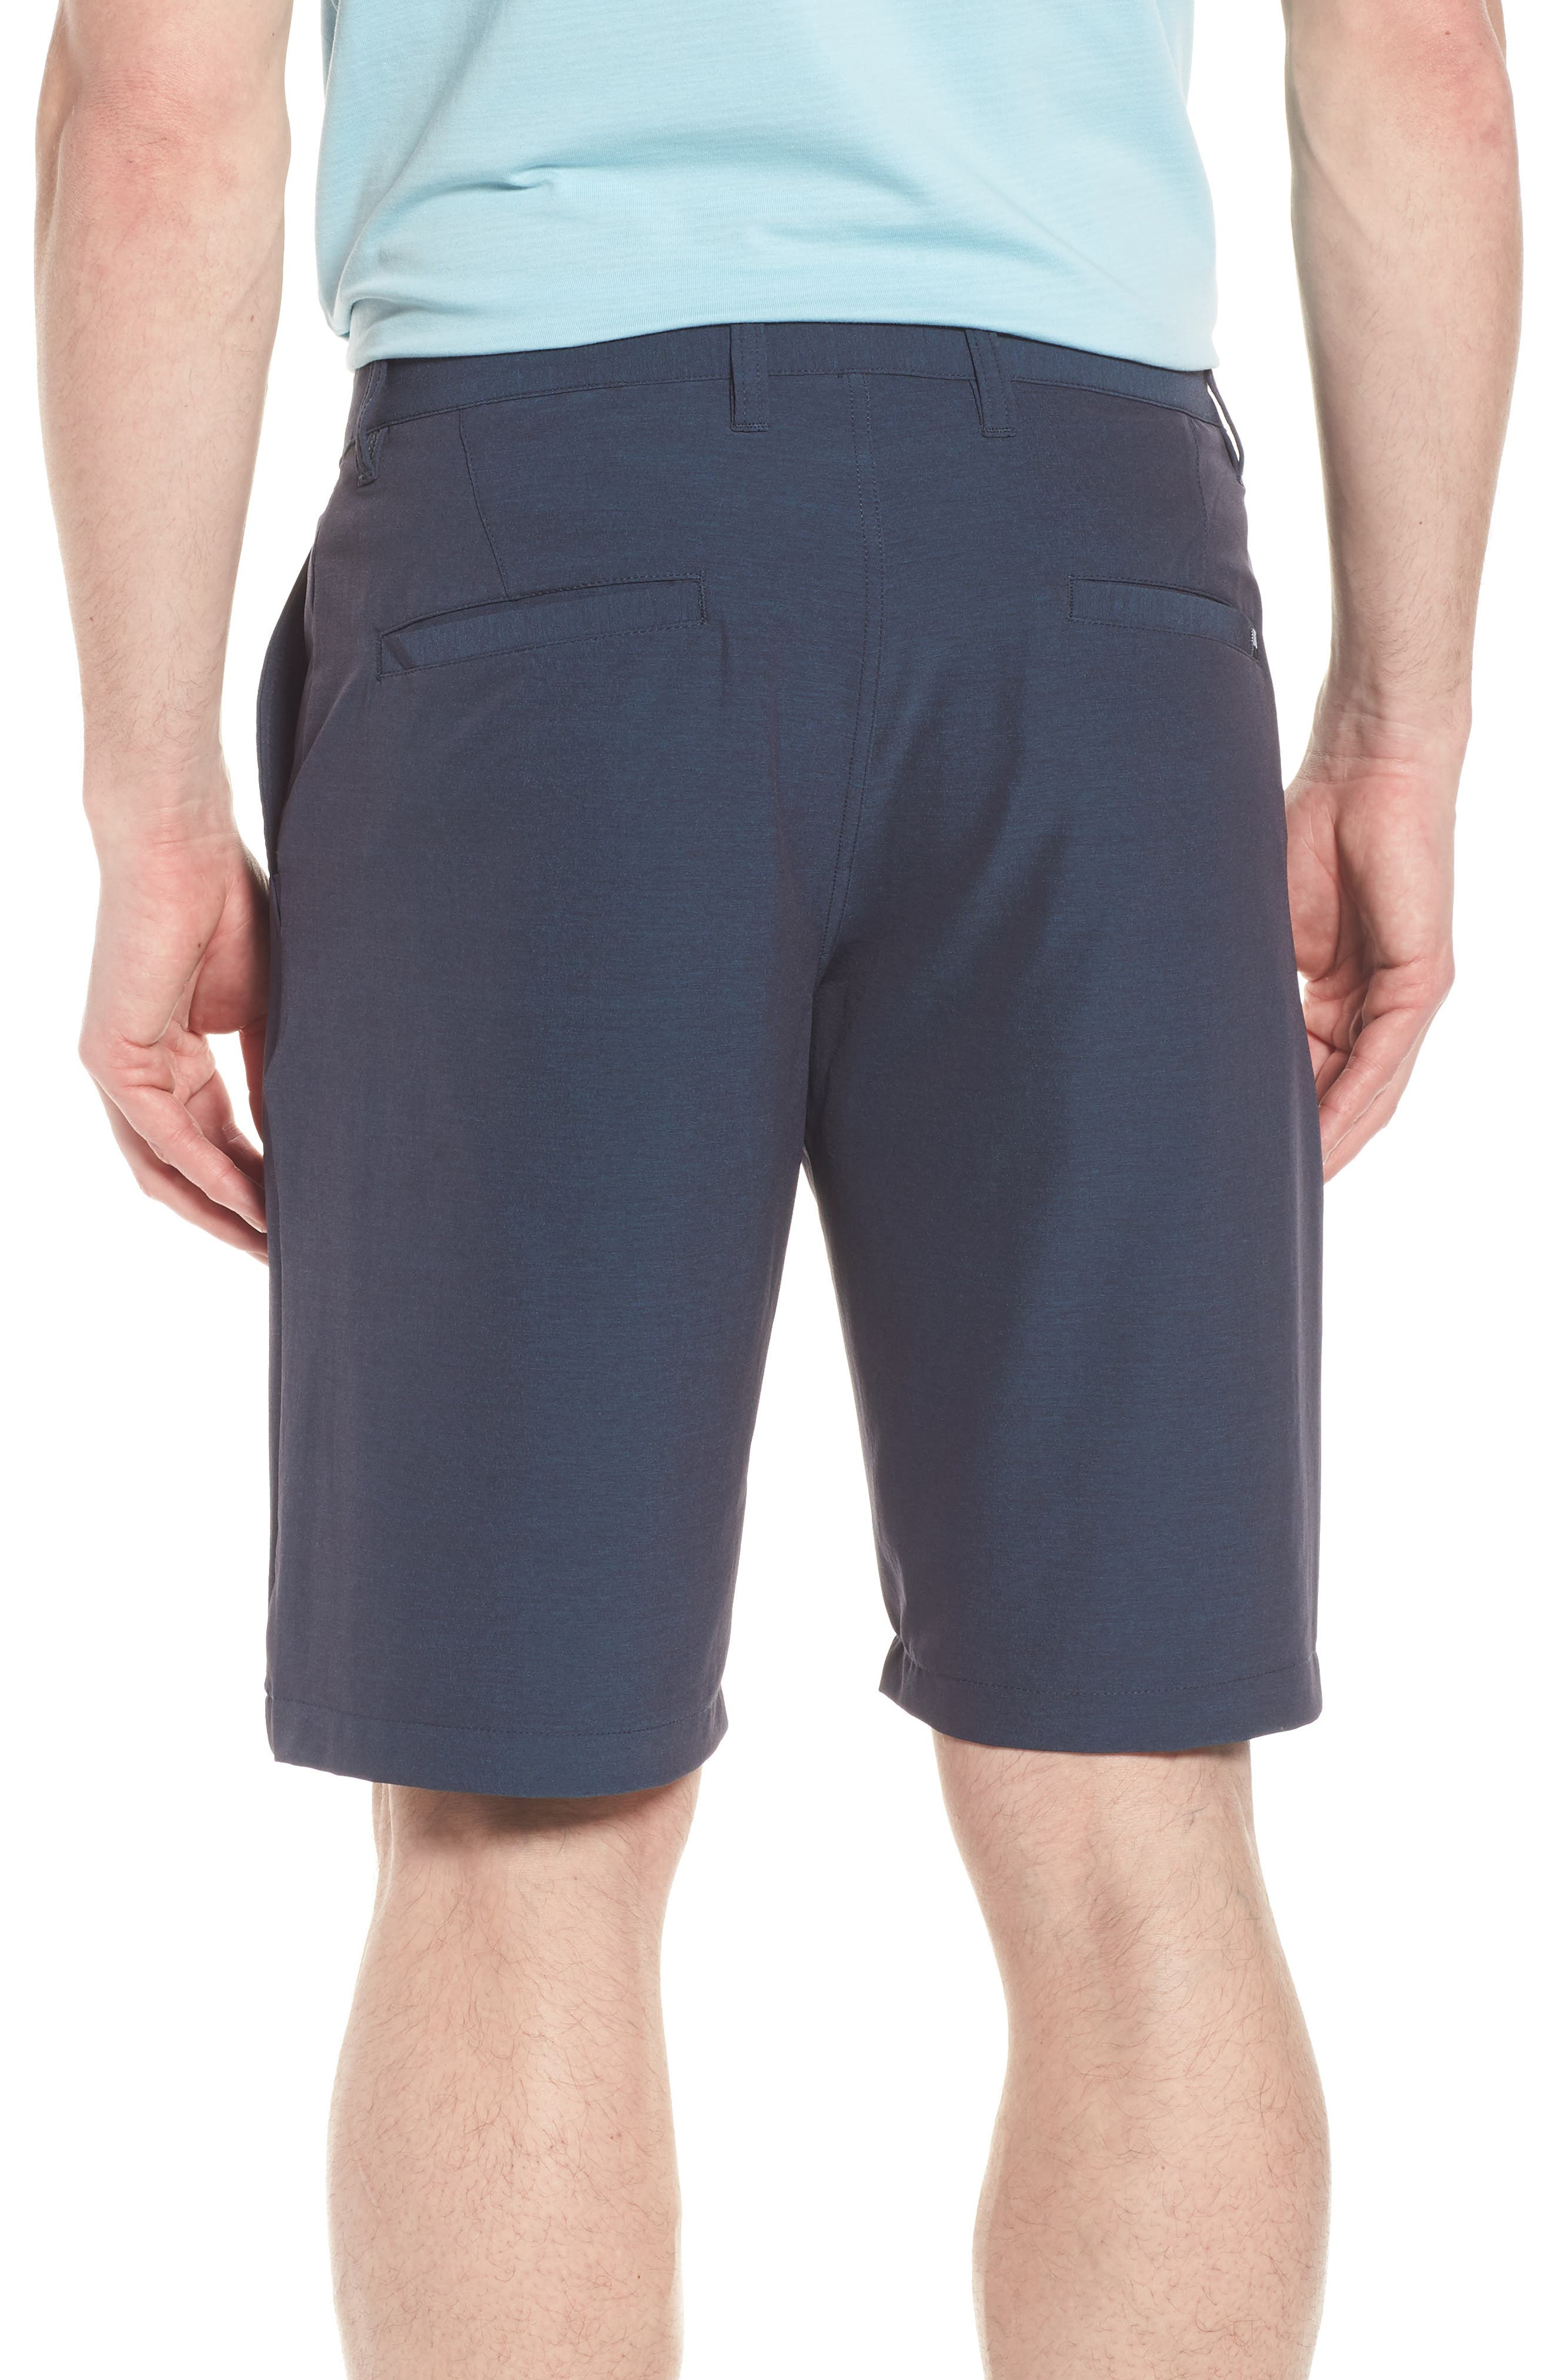 Pancho Shorts,                             Alternate thumbnail 2, color,                             Blue Nights/ French Blue